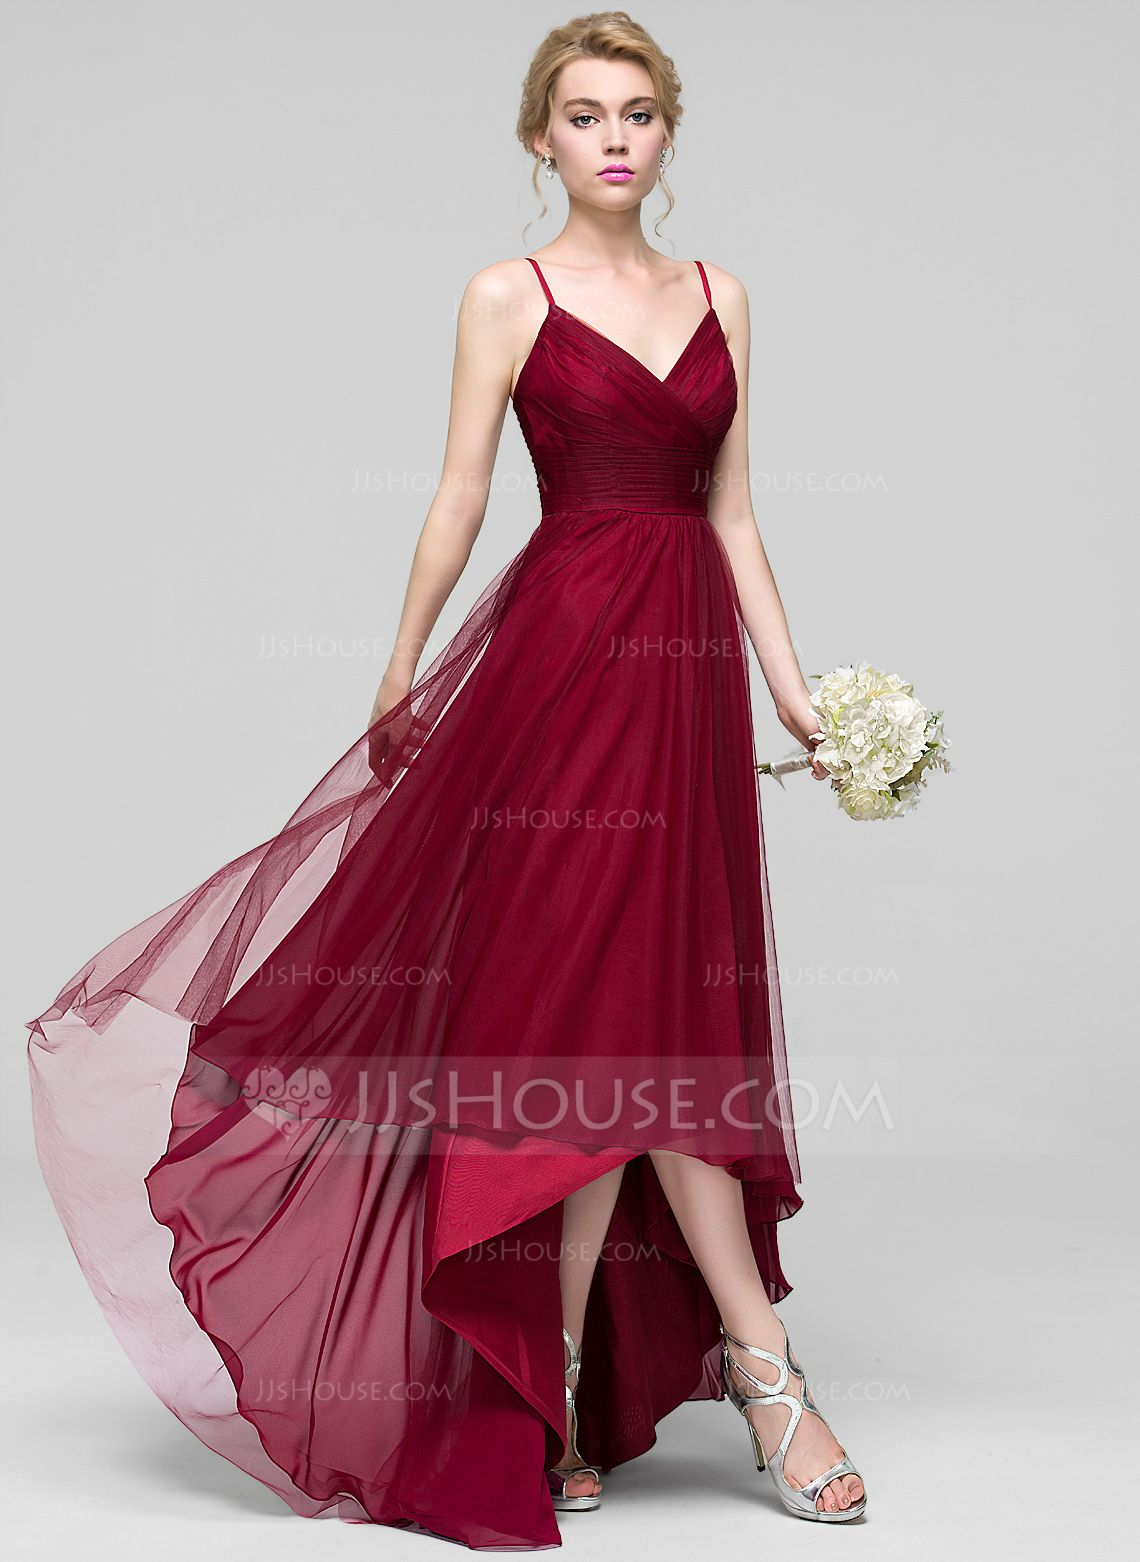 b3bddc01cbd A-Line Princess V-neck Asymmetrical Tulle Bridesmaid Dress With Ruffle  (007090206) - Bridesmaid Dresses - JJsHouse